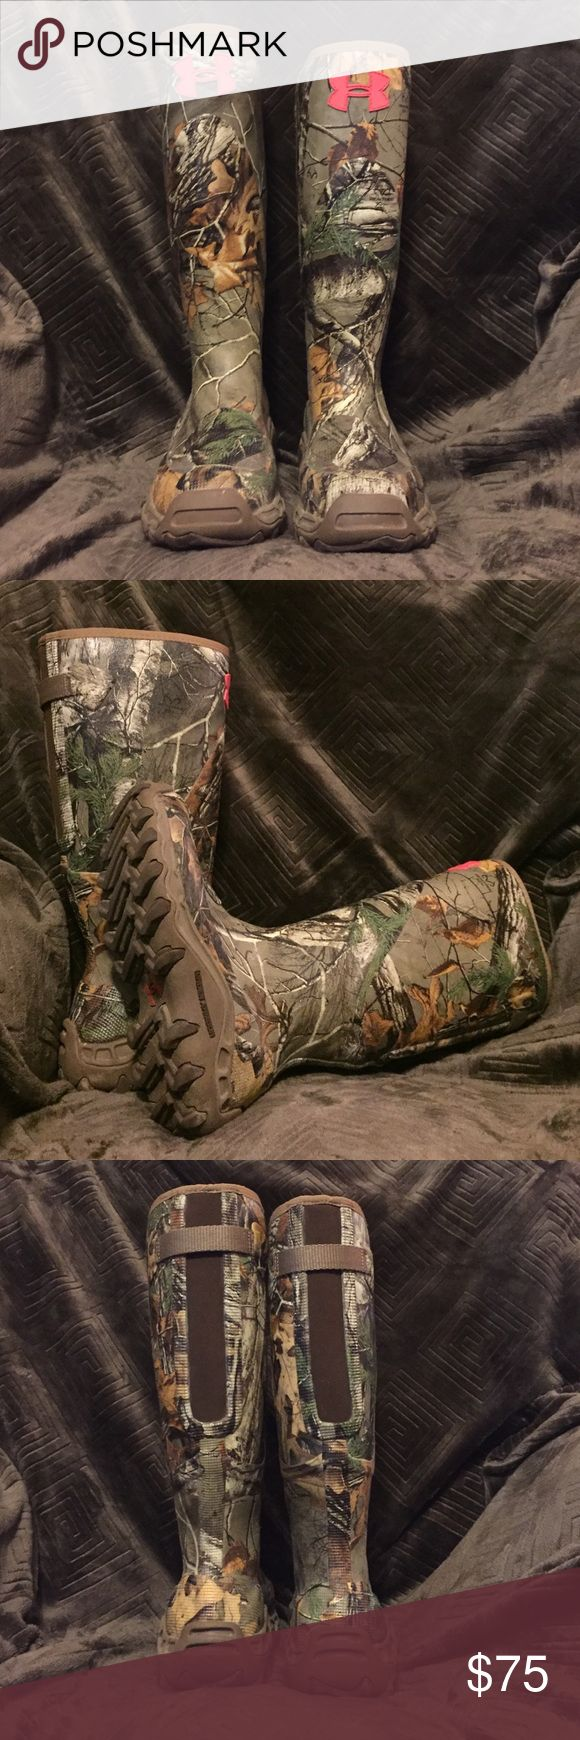 Under Armour Womens Haw'madillo Realtree Xtra GOOD CONDITION. Bought these as last pair and ended up being too small for me. Great boot for hiking and turkey hunting. Waterproof and would be comfortable if right size. Perfect for any lady looking for UA hunting gear! Under Armour Shoes Winter & Rain Boots